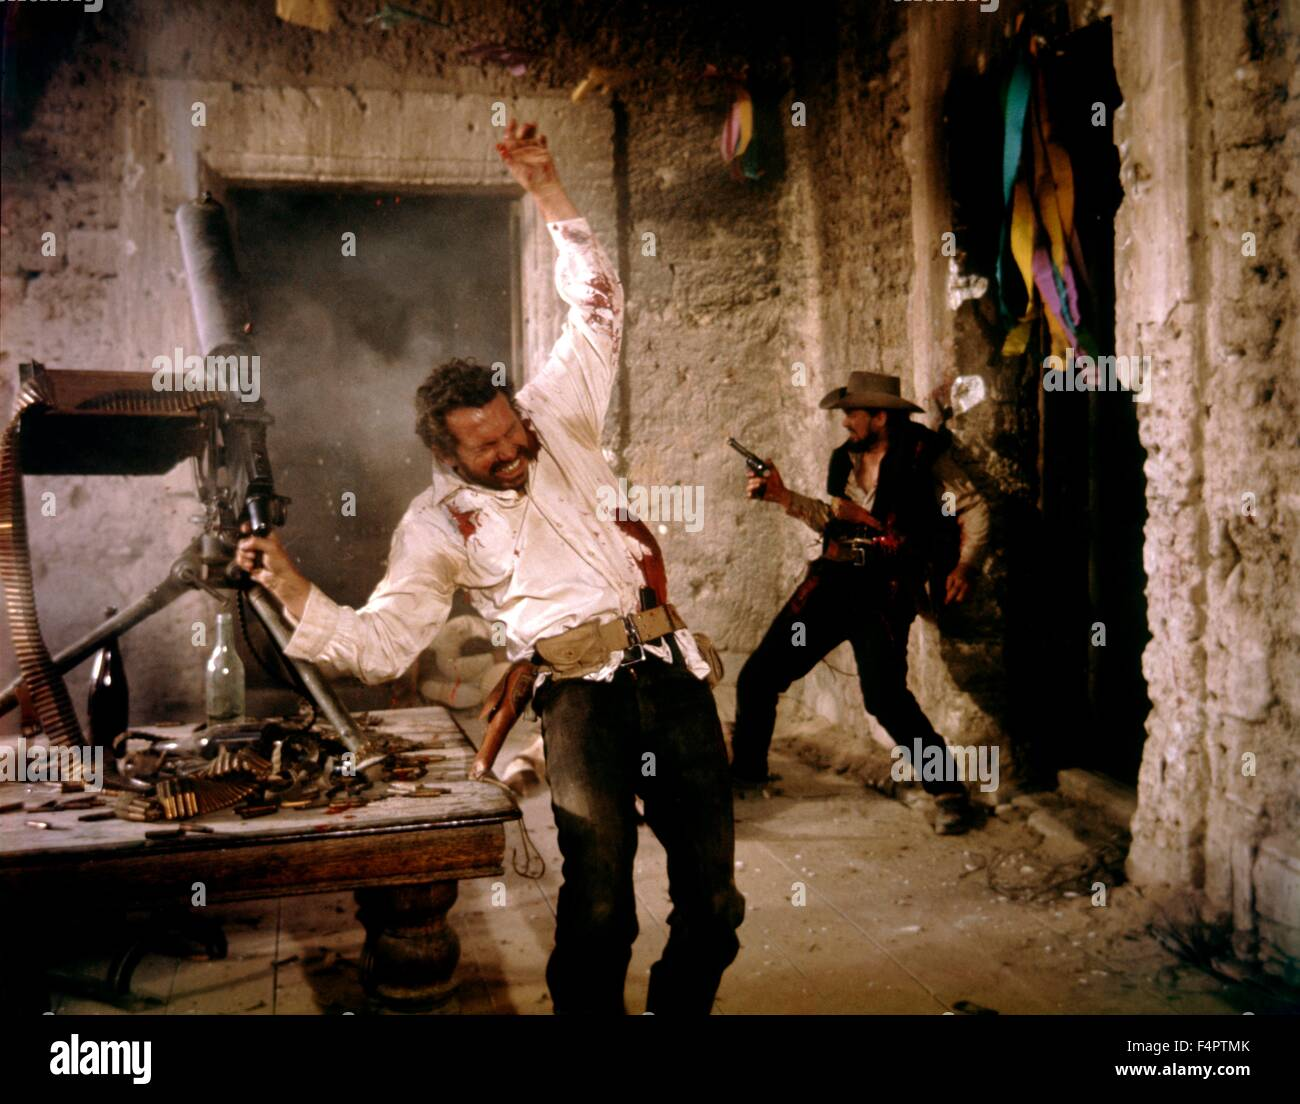 Warren Oates and Ben Johnson / The Wild Bunch / 1969 directed by Sam Peckinpah [Warner Bros. Pictures] - Stock Image